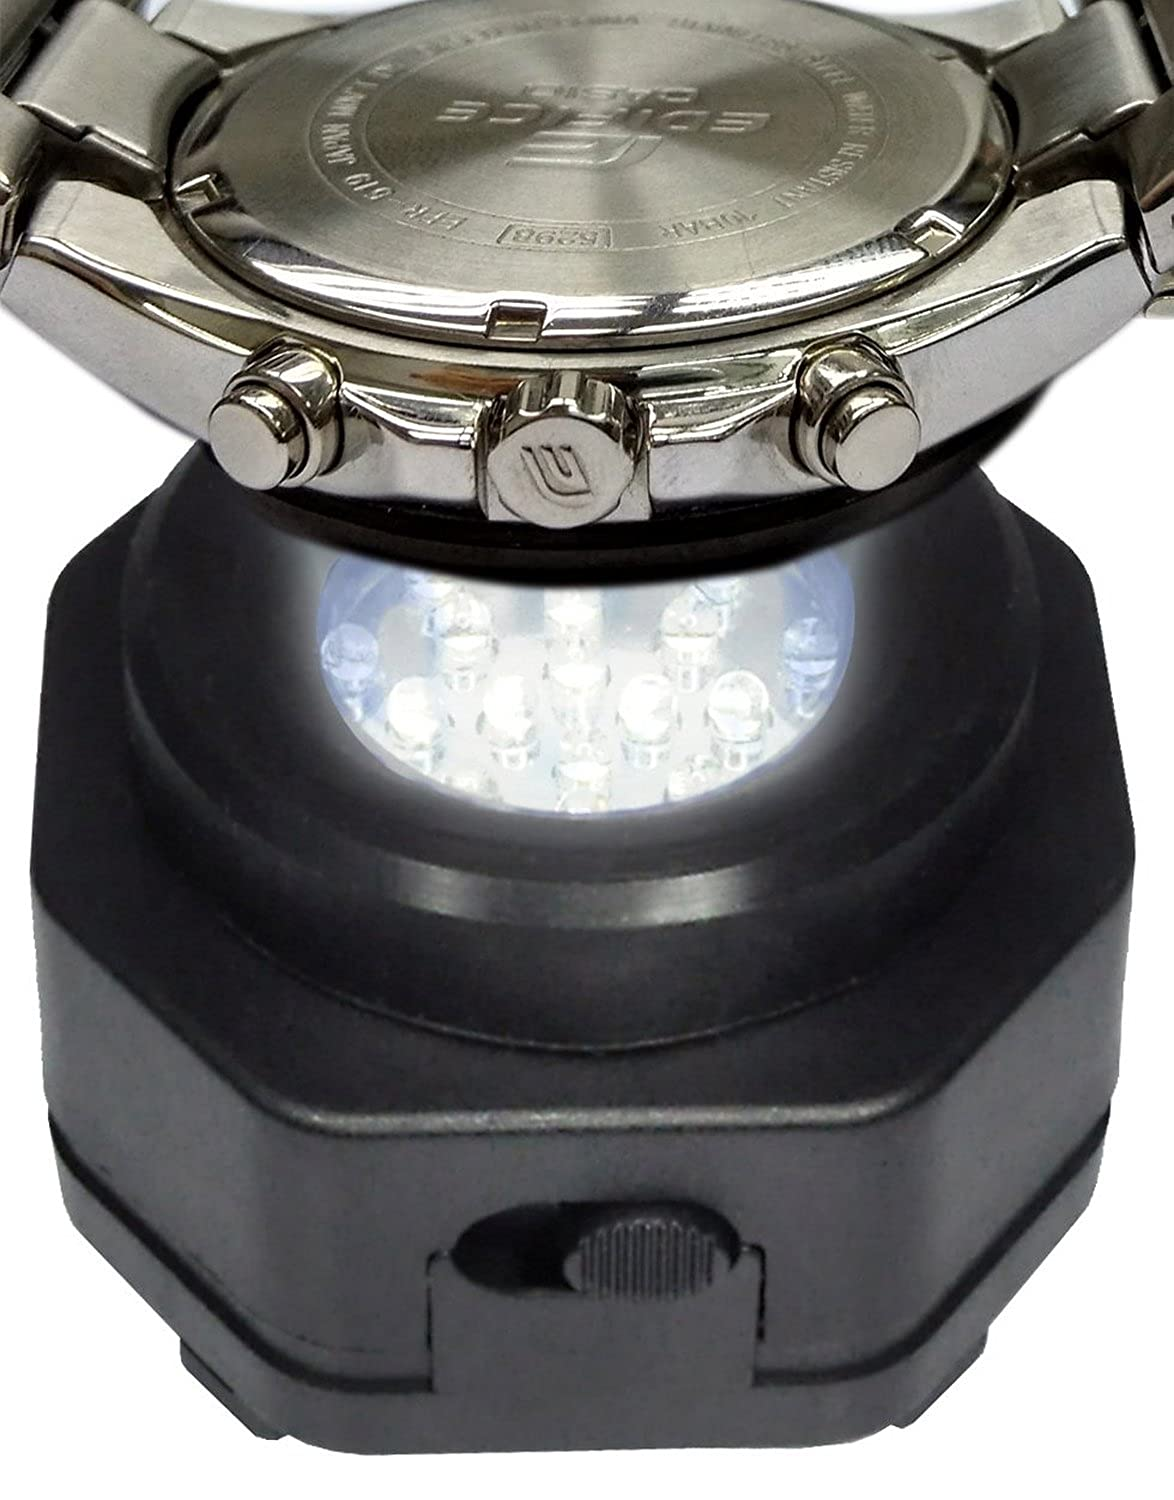 Casio solar citizen eco drive seiko solar watch charger coolfire professional for Solar watches